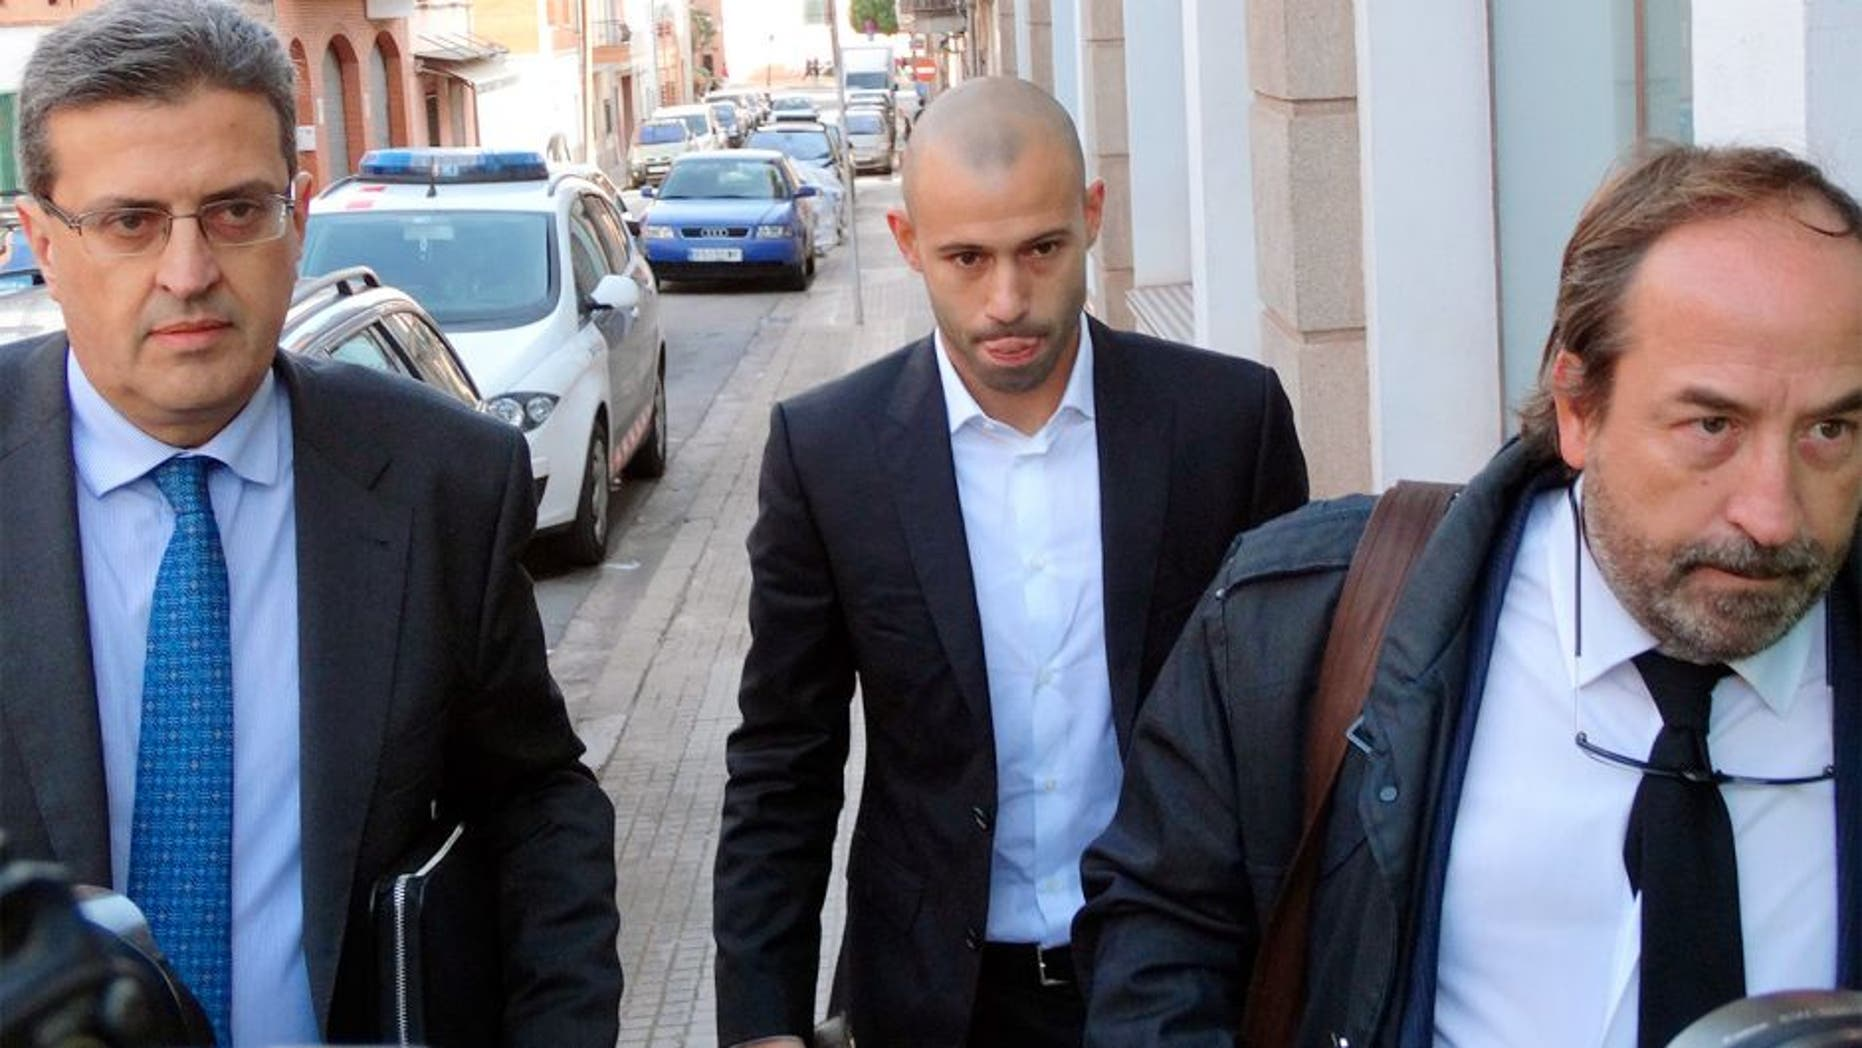 BARCELONA, SPAIN - OCTOBER 29: Barcelona football player Javier Mascherano (C) attends court charged of defrauding more than 1,5 million euros on October 29, 2015 in Barcelona, Spain. (Photo by Europa Press/Europa Press via Getty Images)